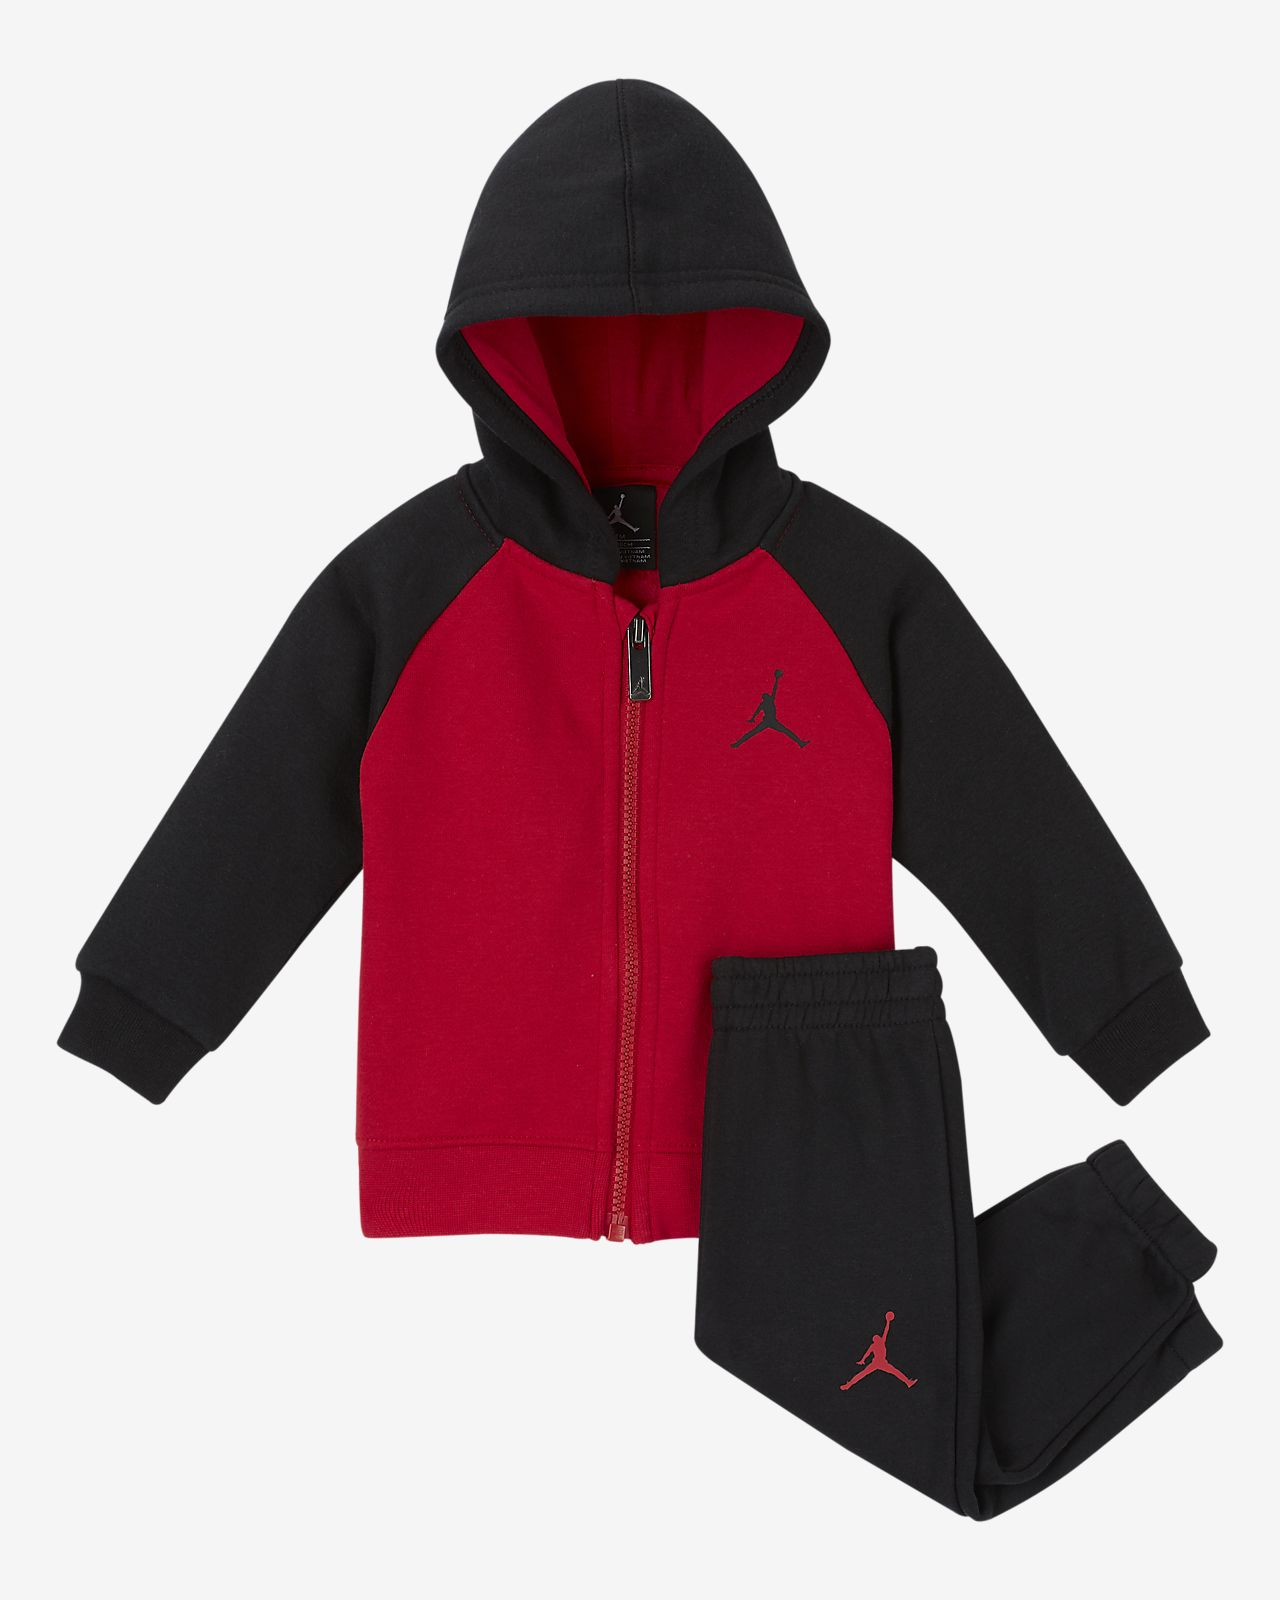 Jordan Baby (12-24M) Fleece 2-Piece Set